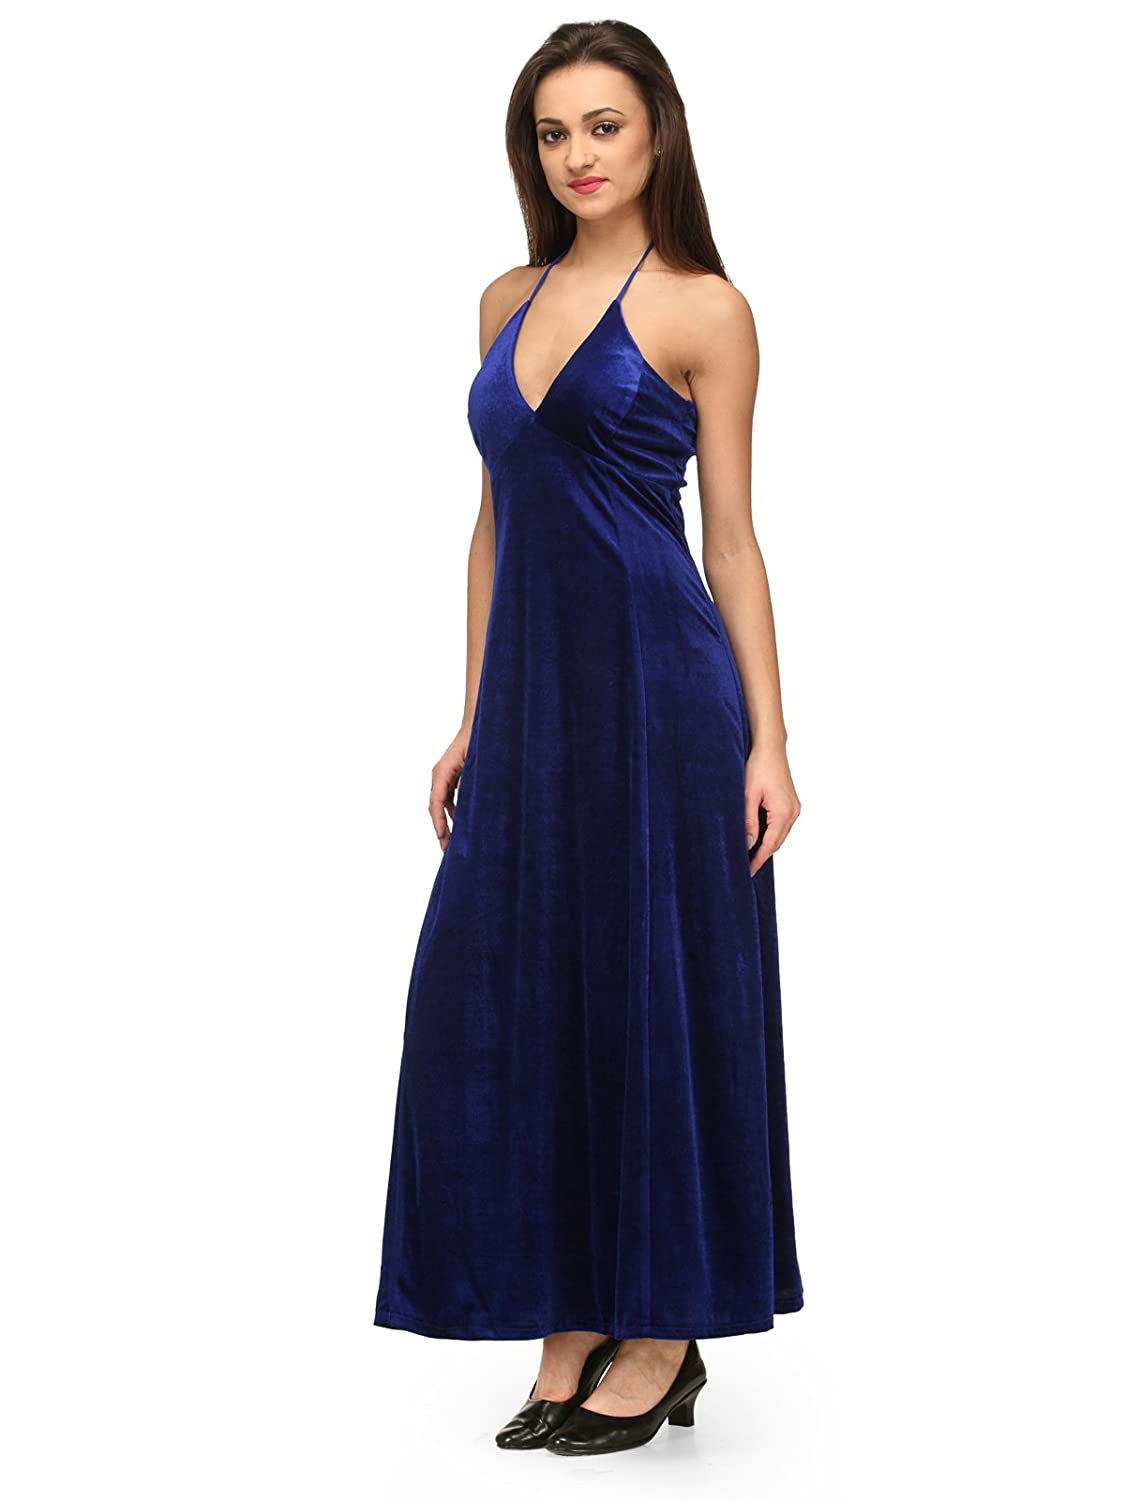 bec374d7c1fa XOXO Blue Velvet Maxi Gown  Amazon.in  Clothing   Accessories